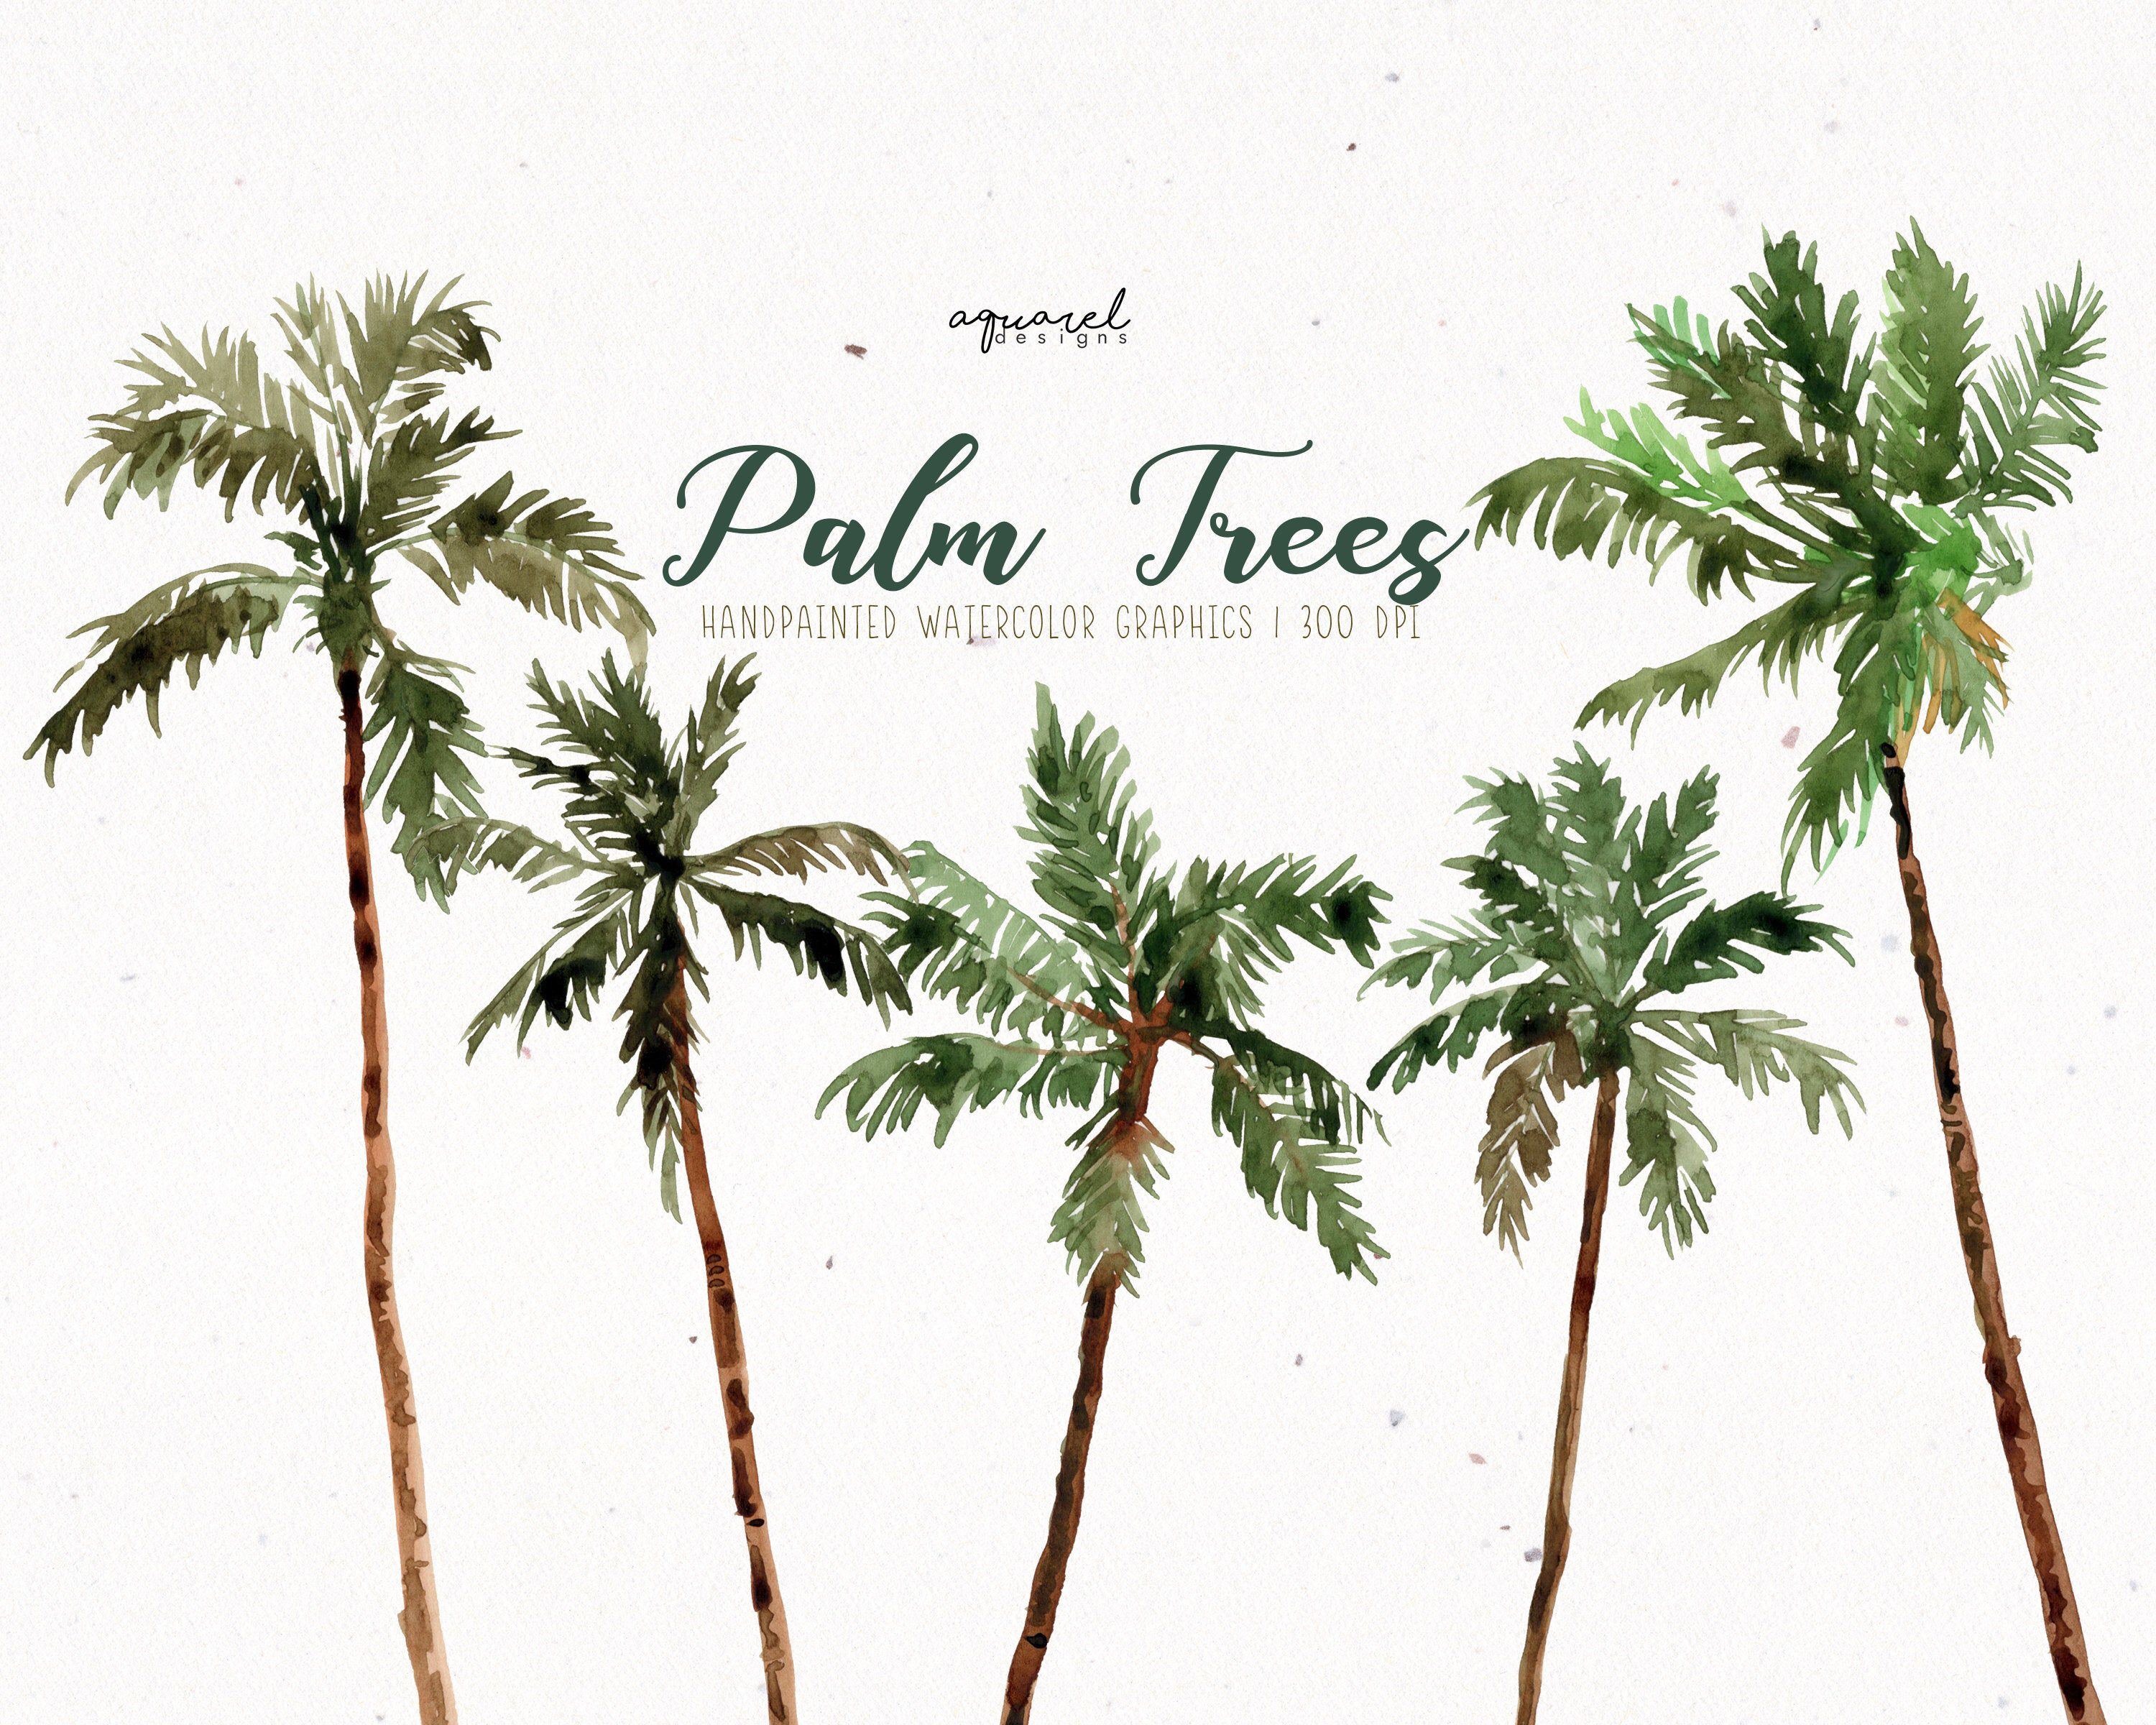 Coconut Palm Trees Clipart Watercolor Clipart Watercolor Palm